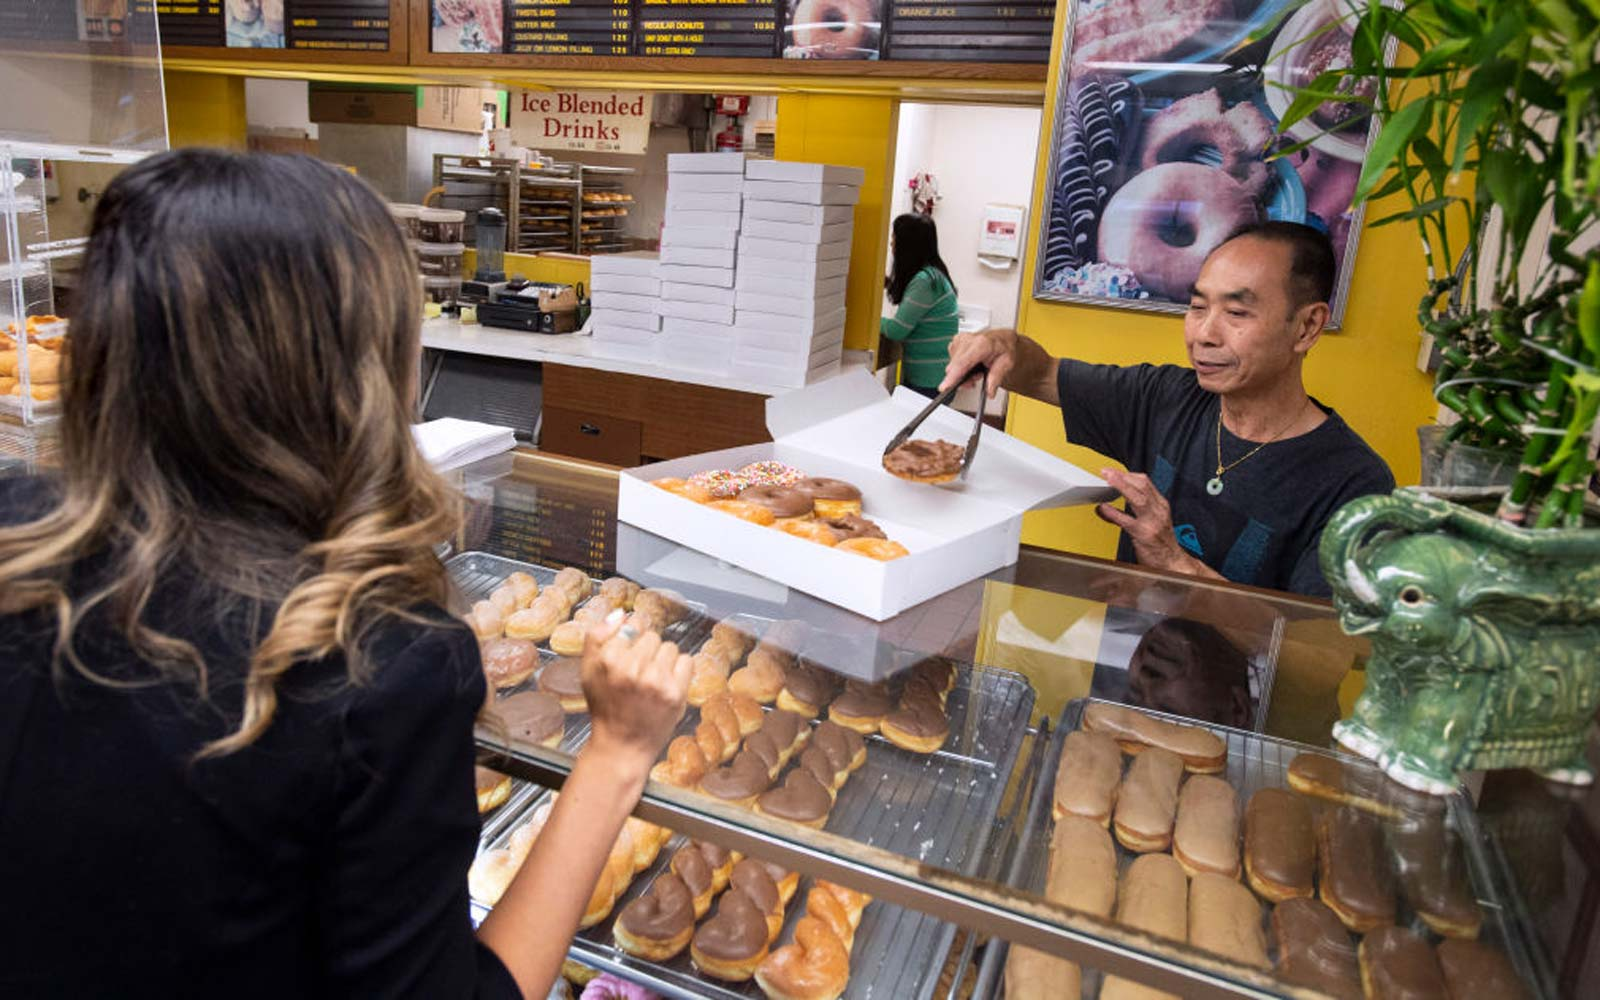 Customers Are Buying Out This Donut Shop Each Morning so the Owner Can Care for His Sick Wife